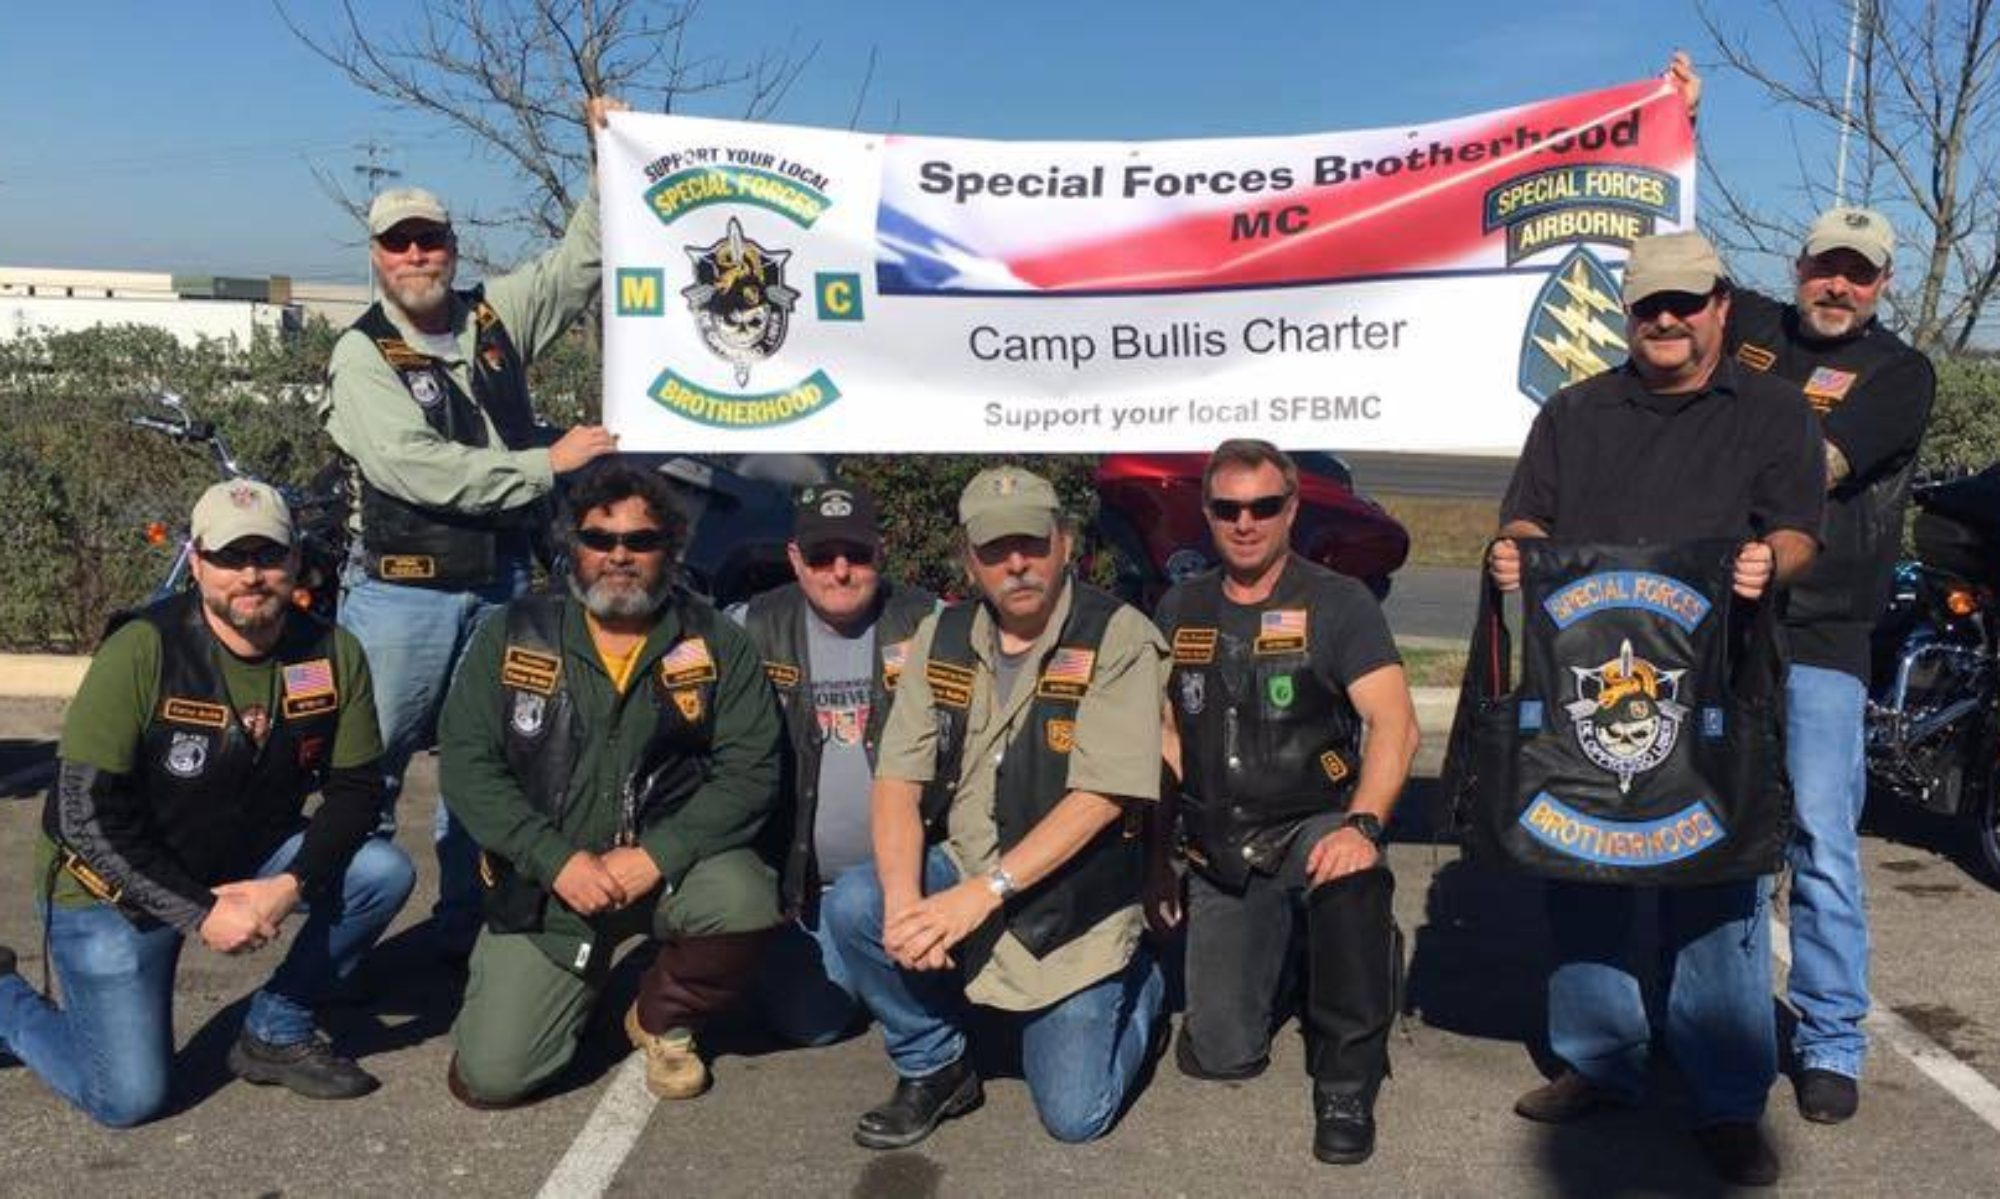 Special Forces Brotherhood MC Camp  Bullis